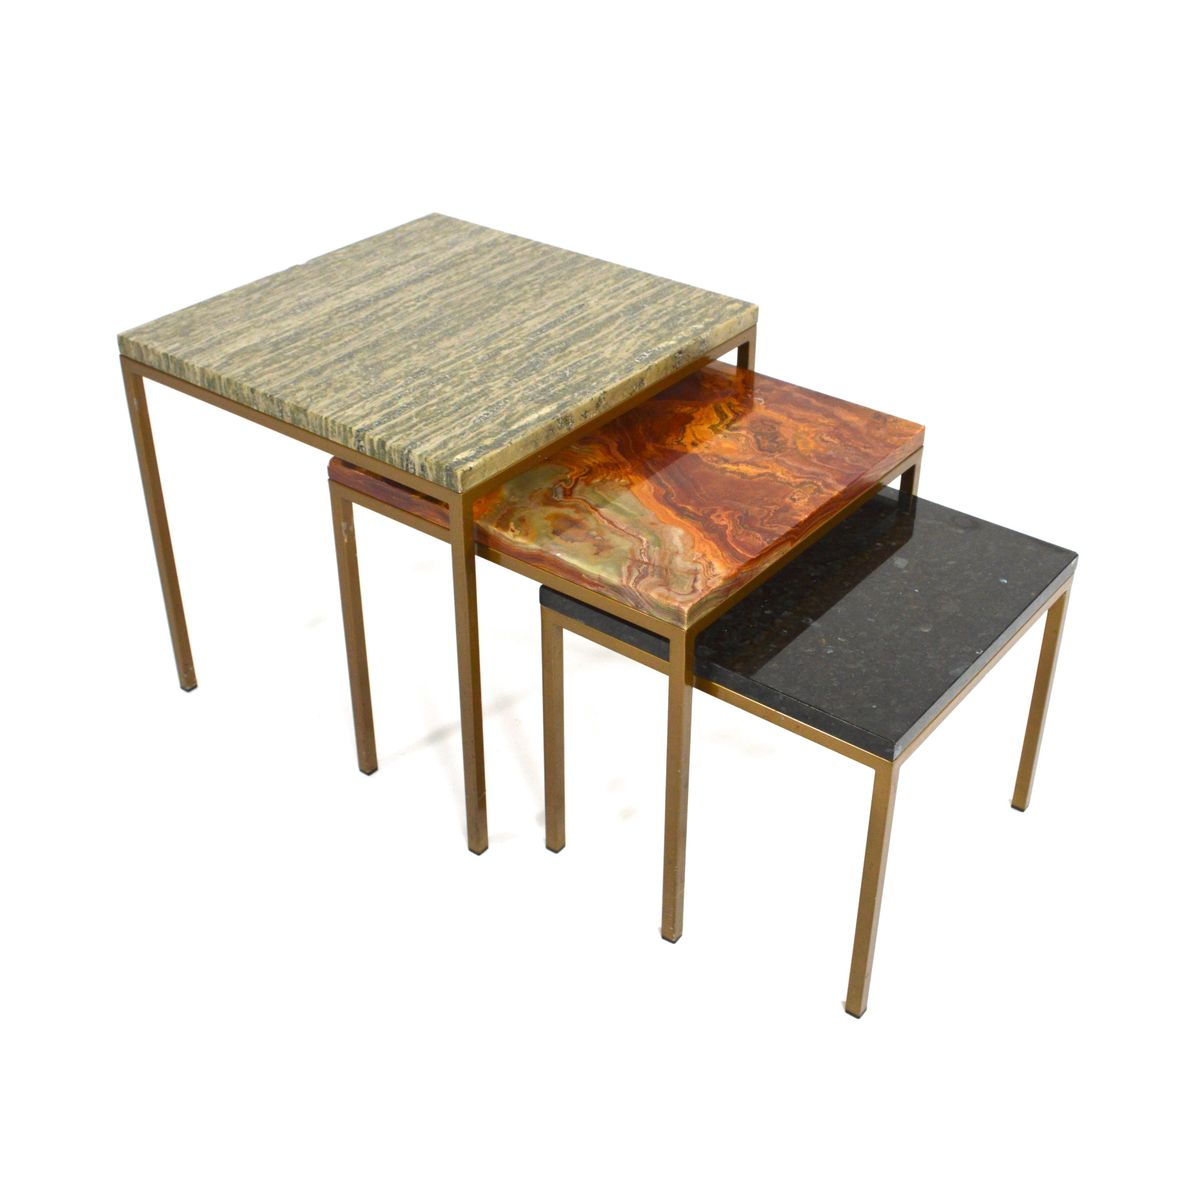 Marble Ayva Nesting Coffee Tables Set Of 2: Vintage Italian Marble Nesting Tables, Set Of 3 For Sale